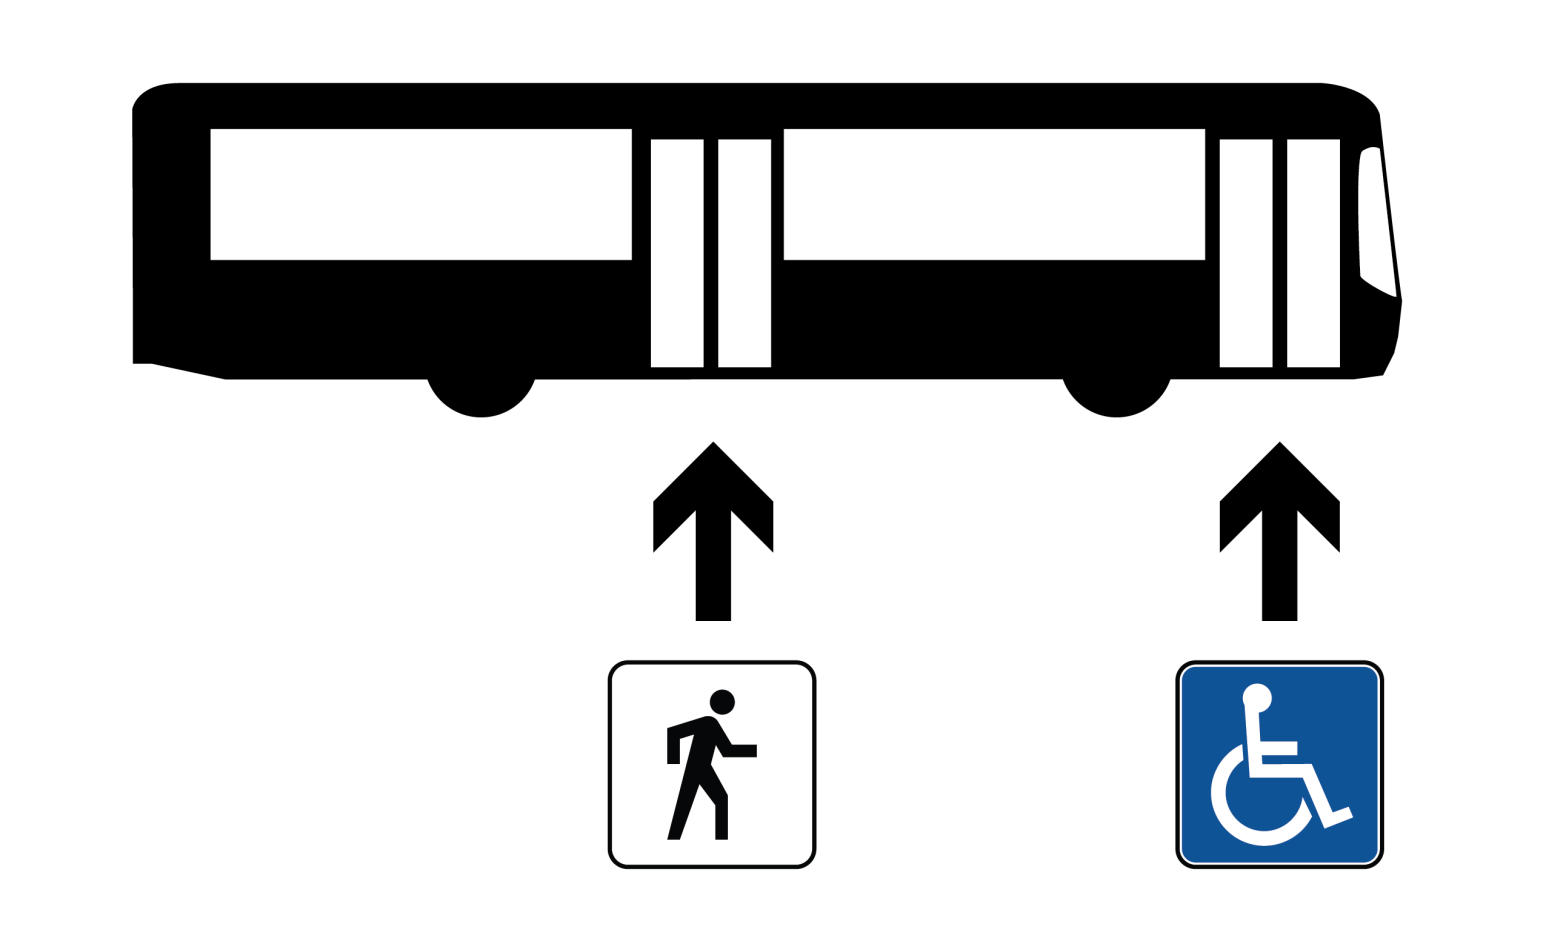 Diagram advising to board bus from the rear doors